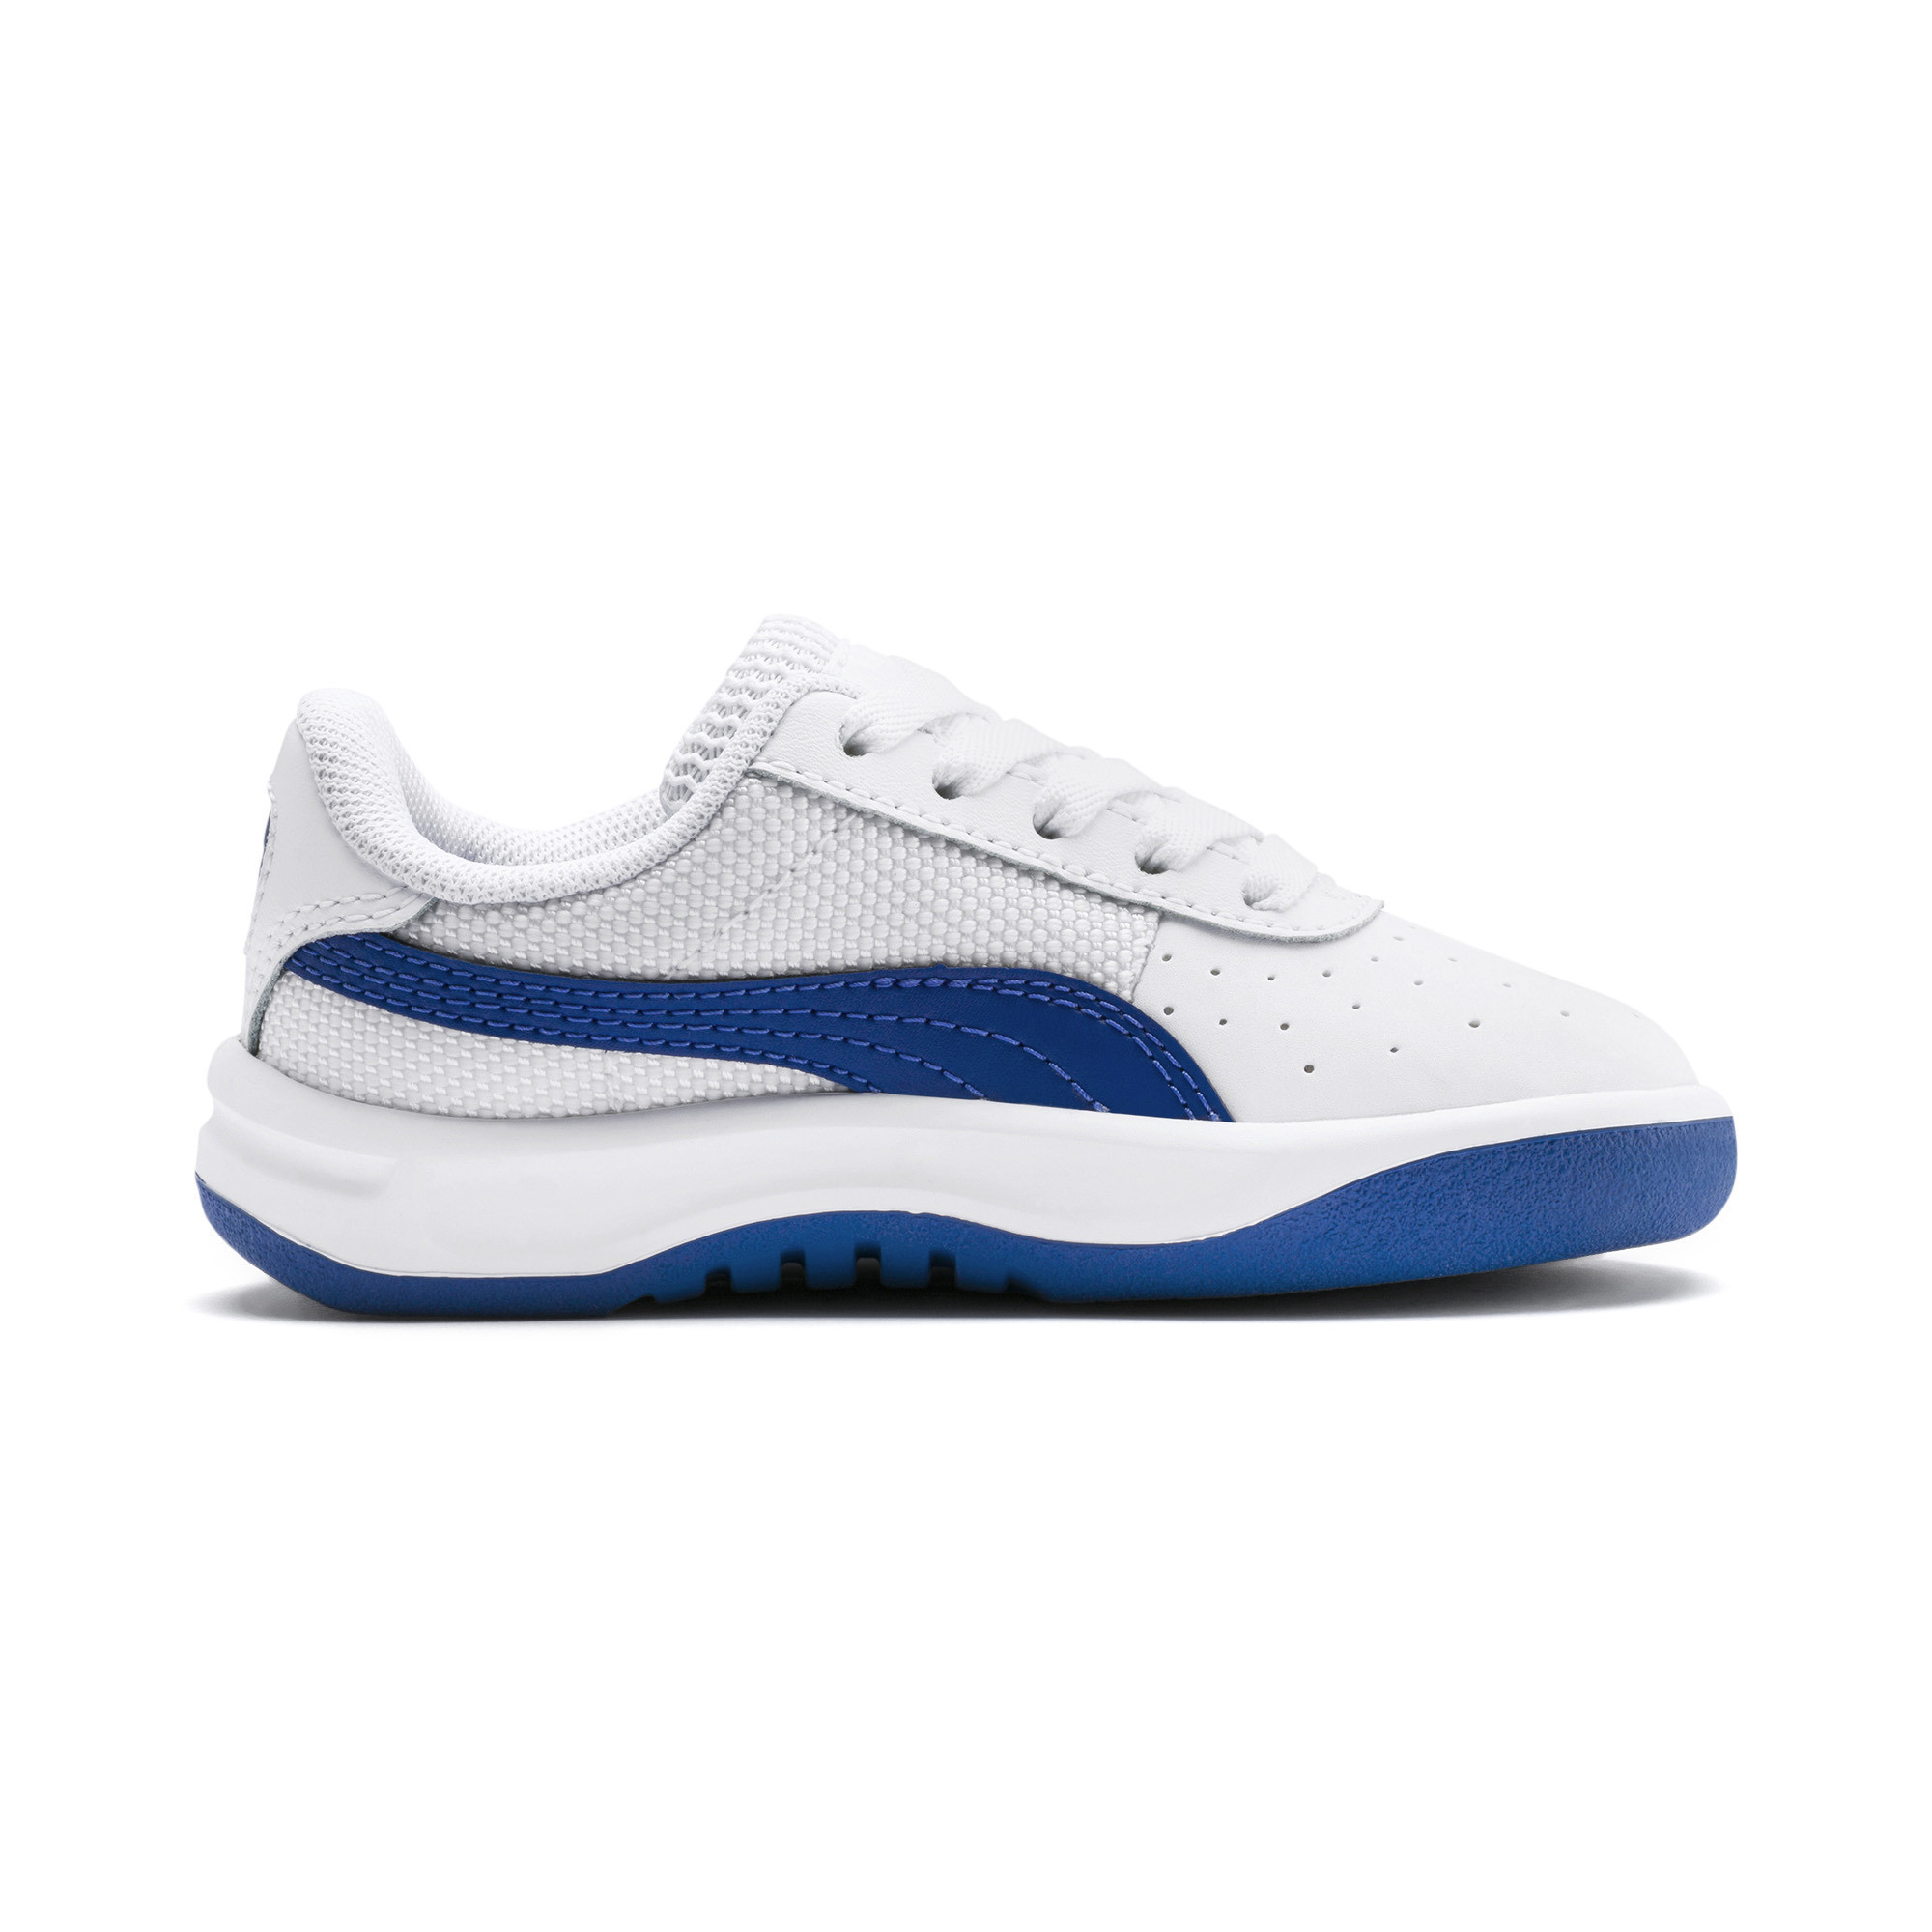 PUMA-California-Toddler-Shoes-Kids-Shoe-Kids thumbnail 6